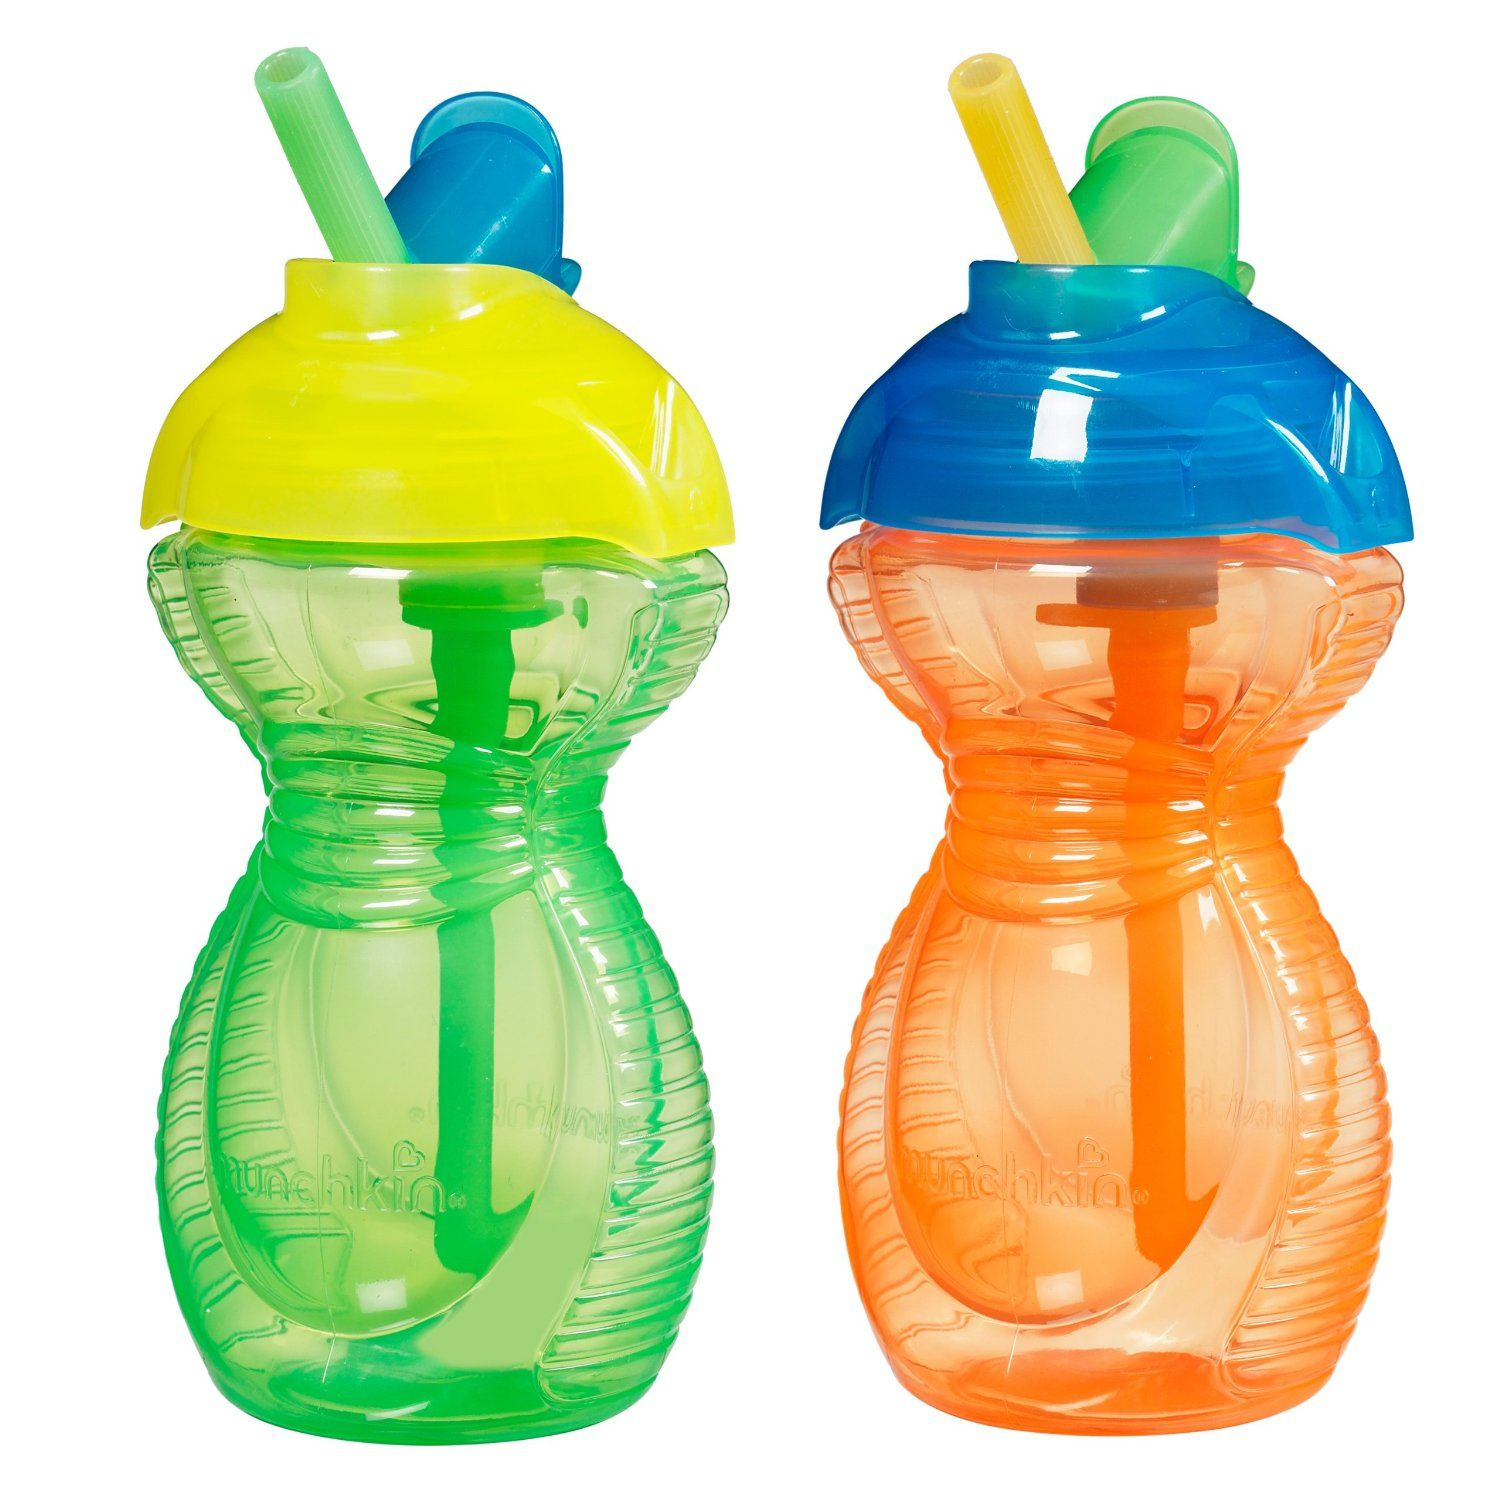 Munchkin Flip Straw Sippy Cup After Buying Over 10 Different Types Of Sippy Cups This One Has Lasted The Cup With Straw Baby Boy Accessories Insulated Cups